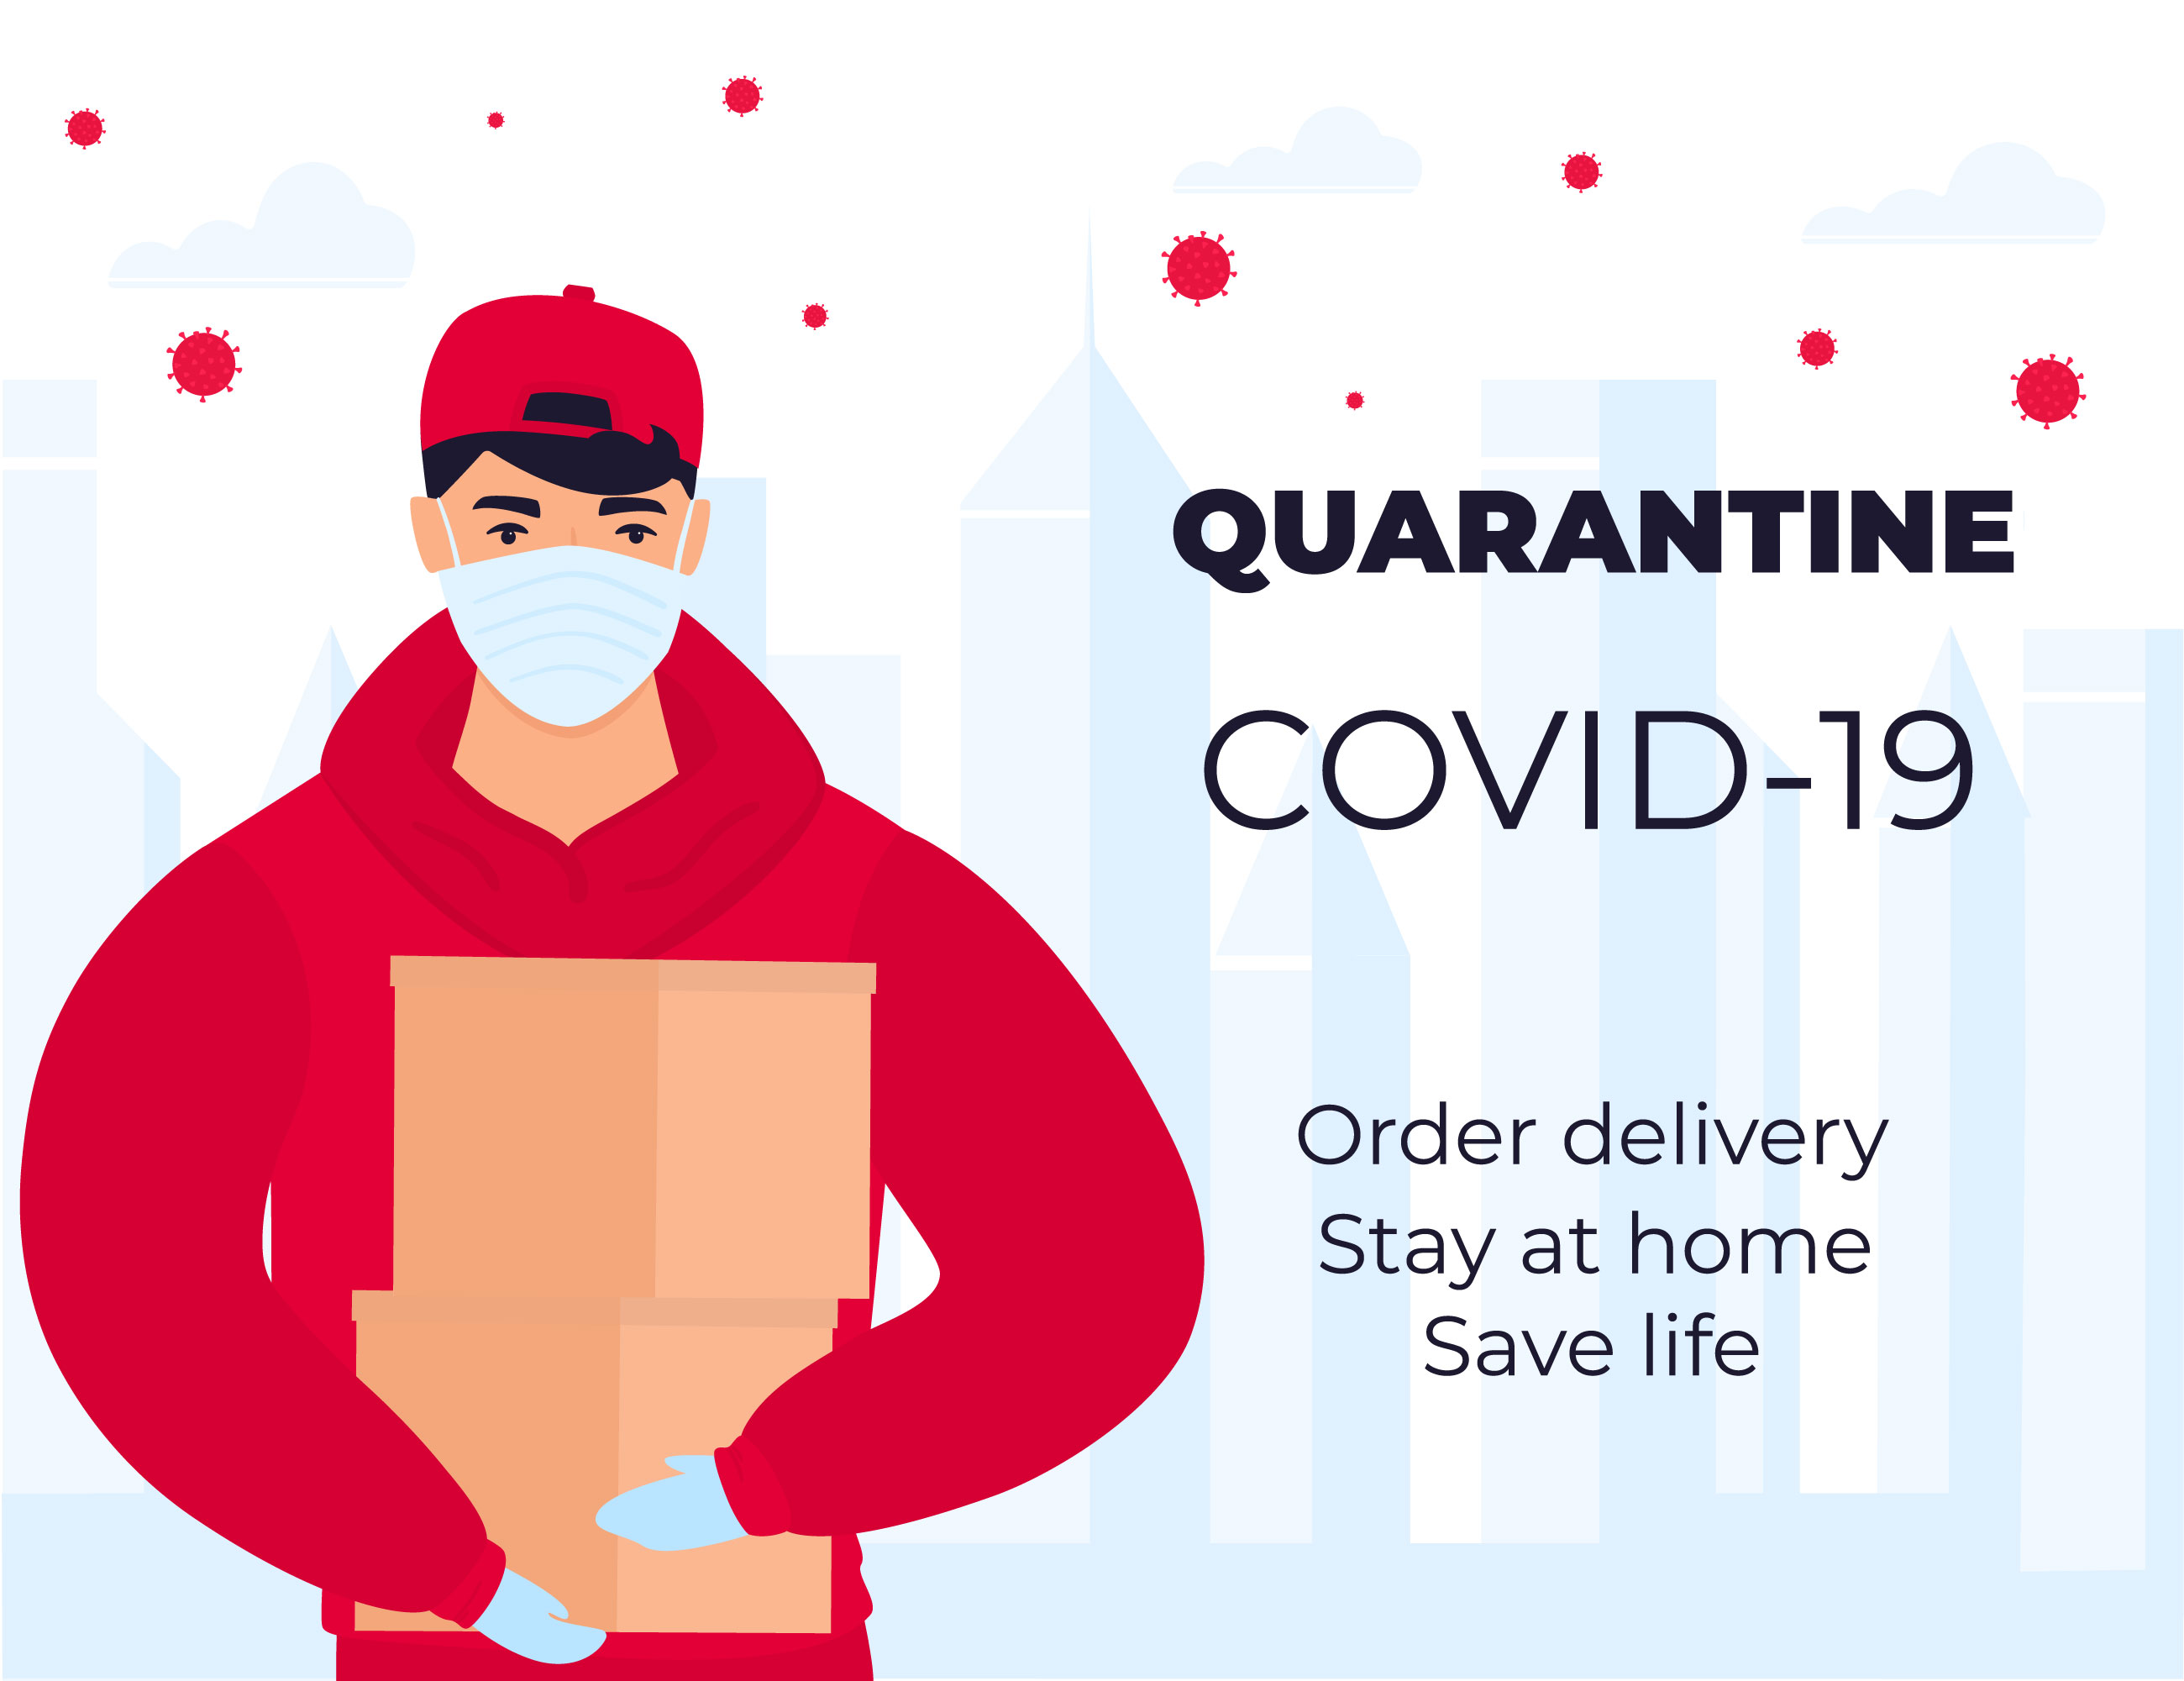 Shipping Service impacts related to Covid-19